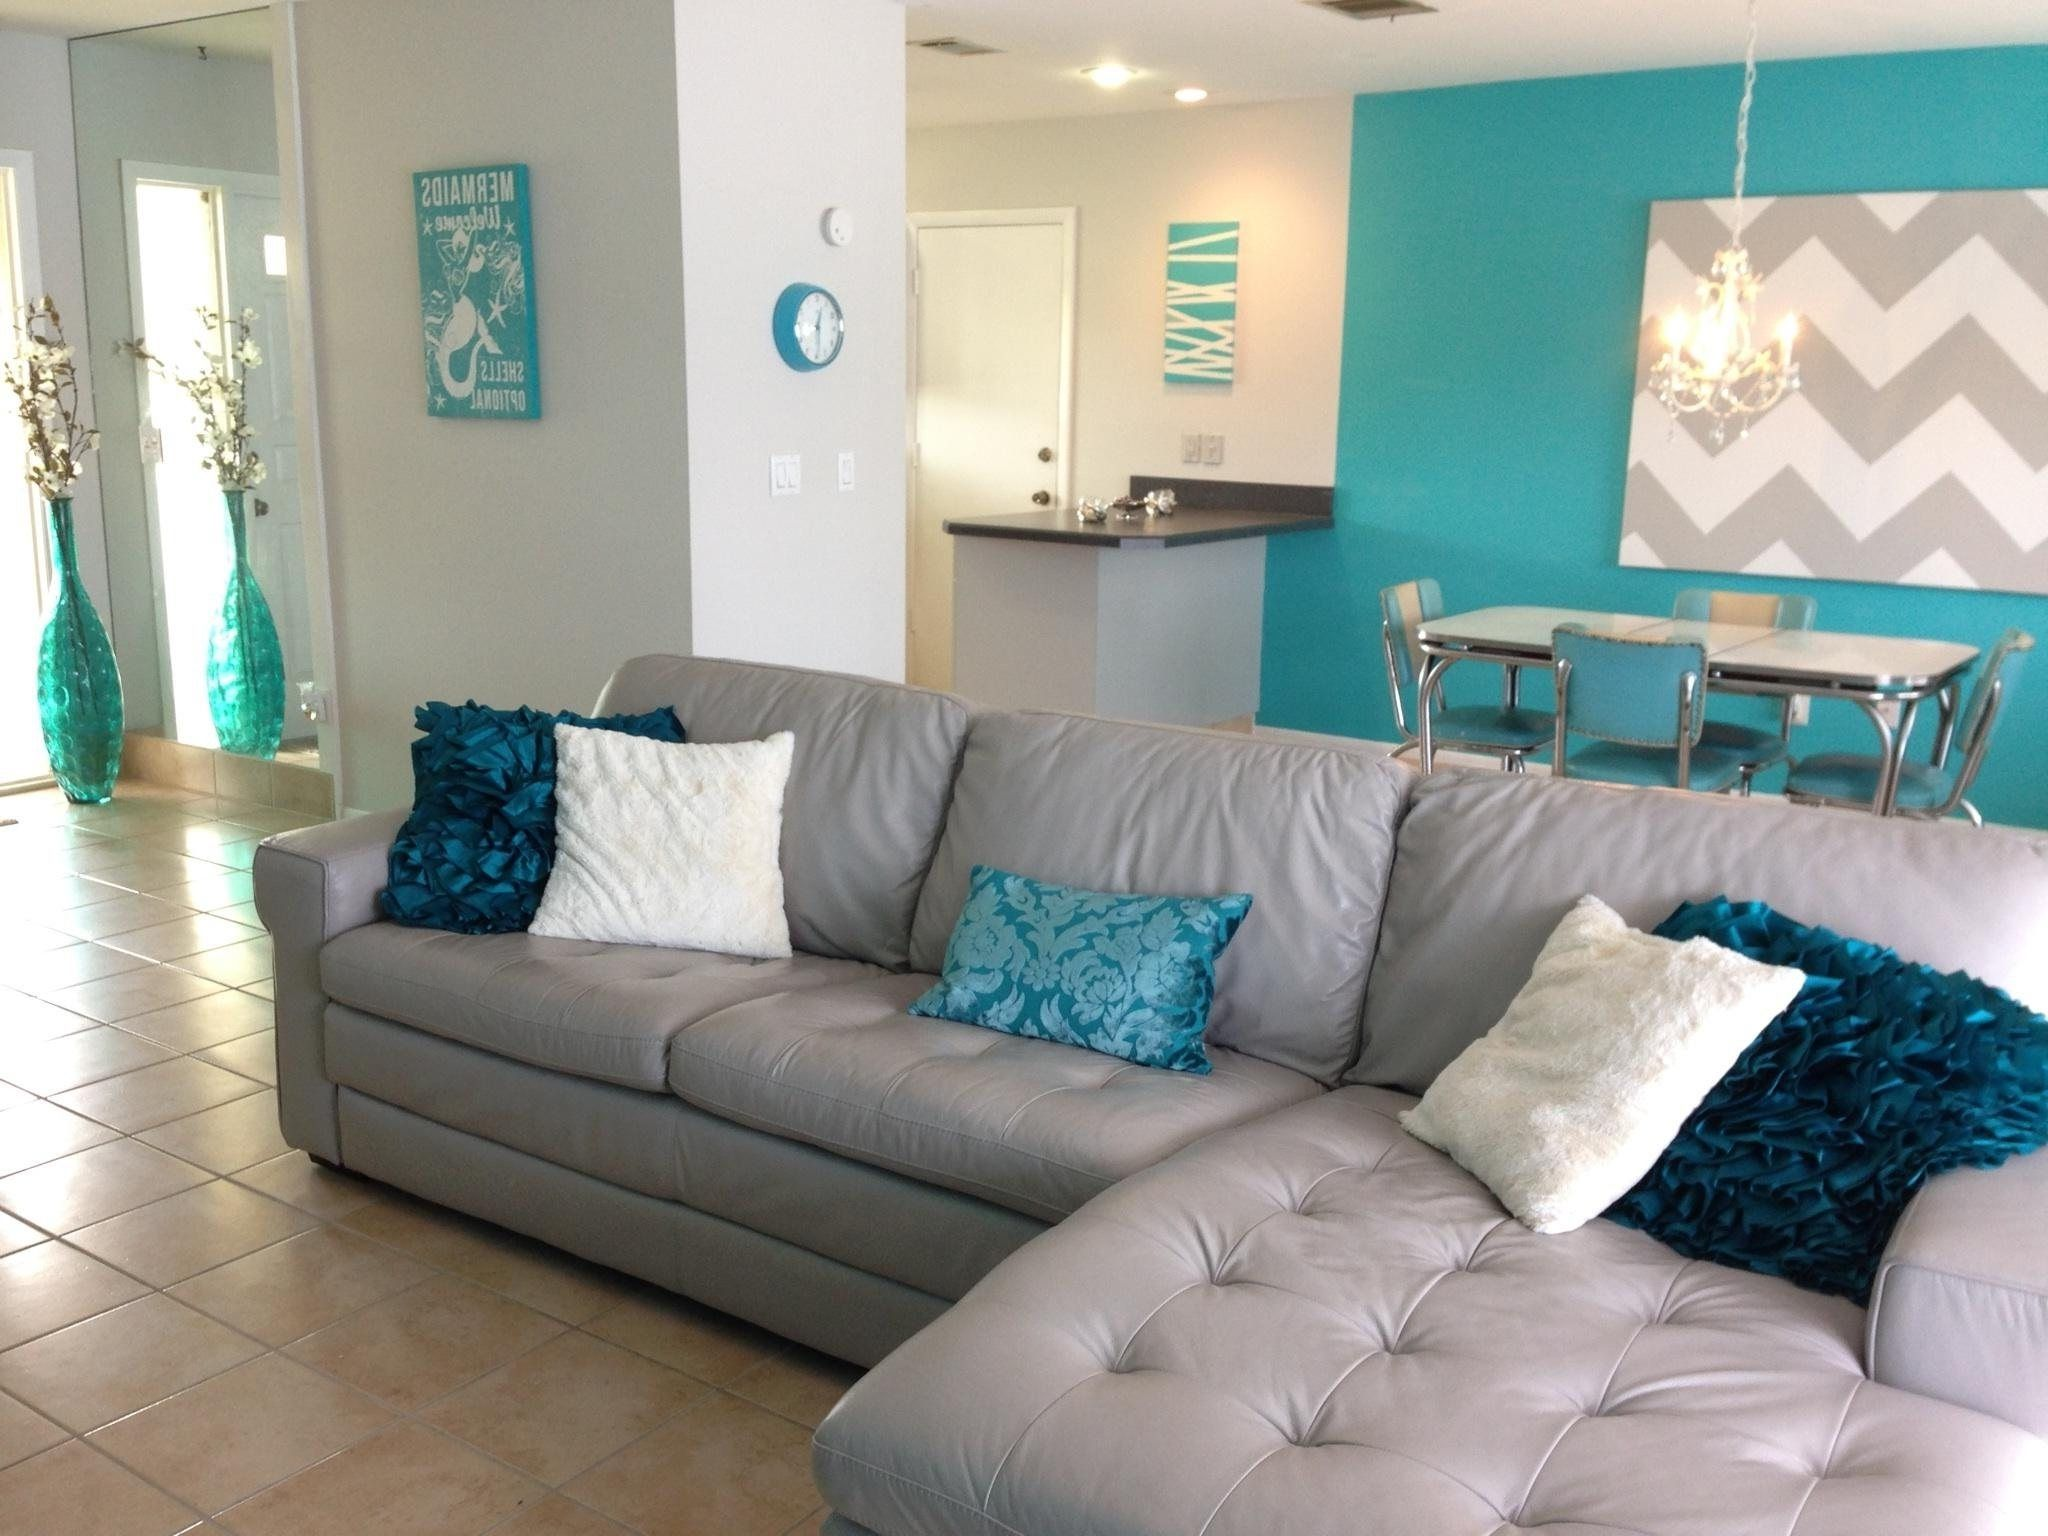 Living Room Yellow And Grey Yellow Turquoise And Grey Living Room Livingroom Yellowa Turquoise Living Room Decor Living Room Turquoise Teal Living Rooms